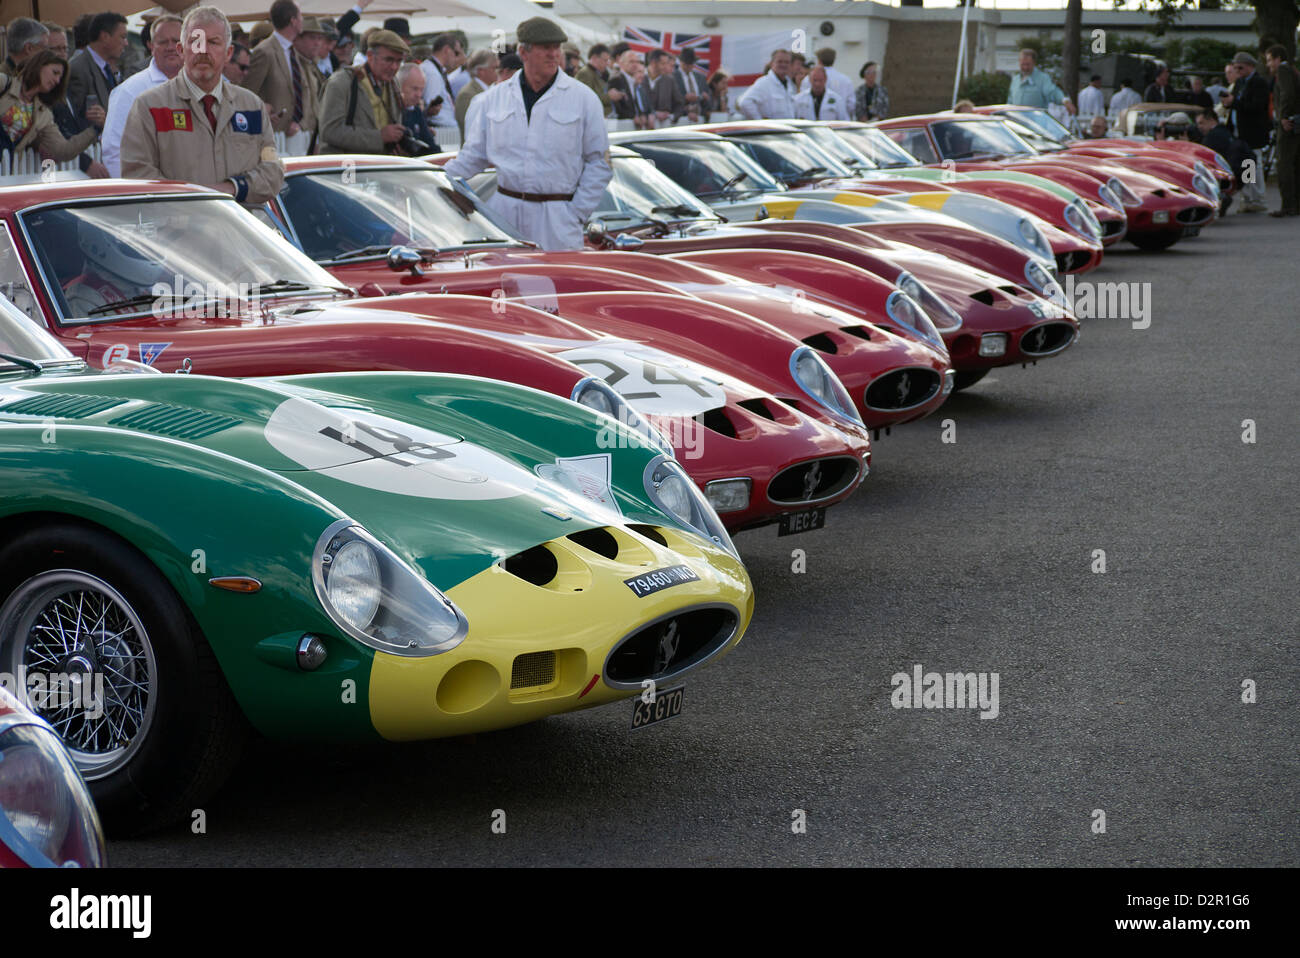 S Ferrari Gto Racing Cars In The Paddock Before Gto Race